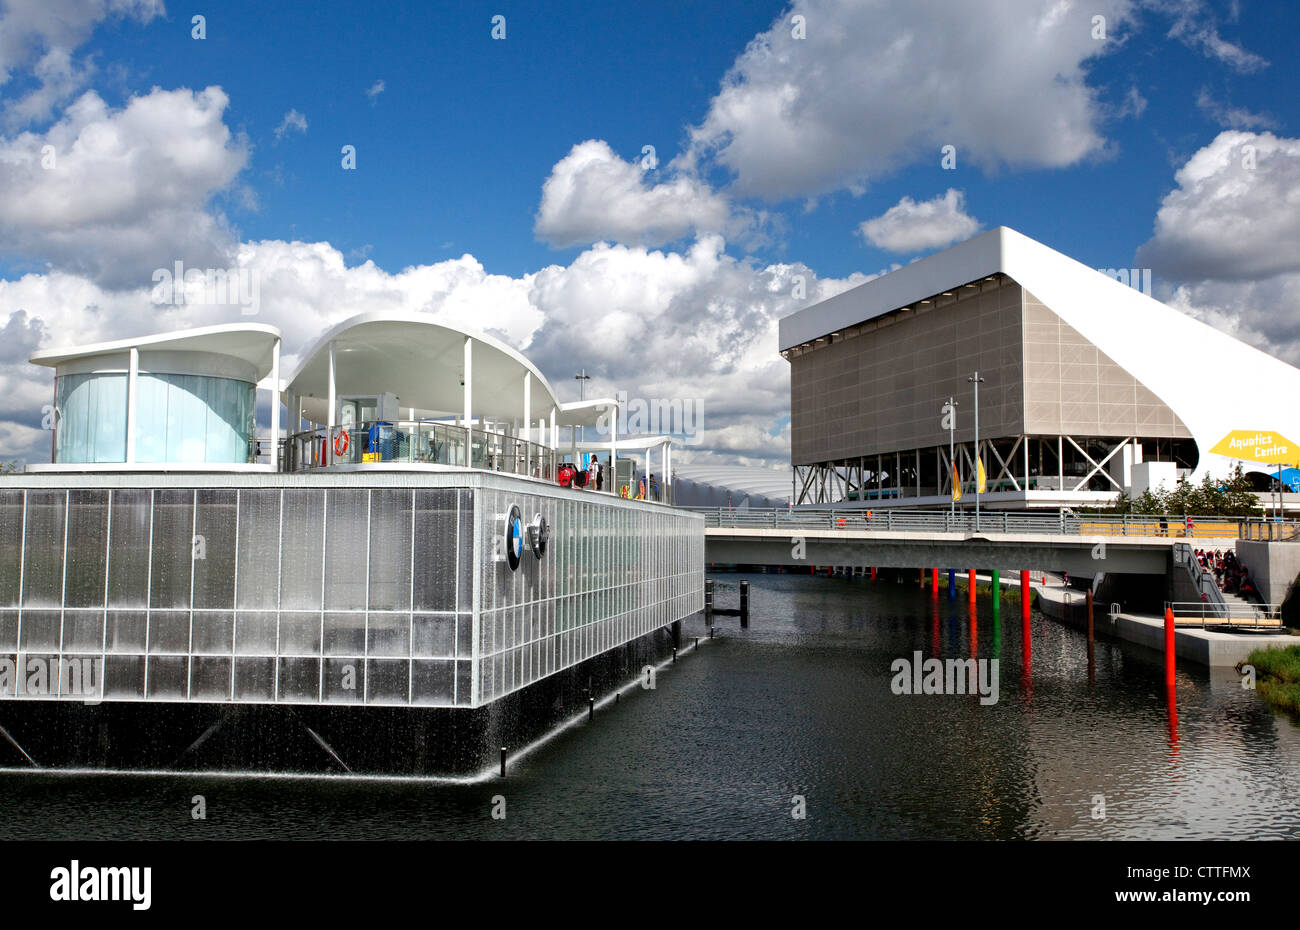 Aquatics Centre (left) and BMW Mini pavilion (right) in Olympic Park, London - Stock Image